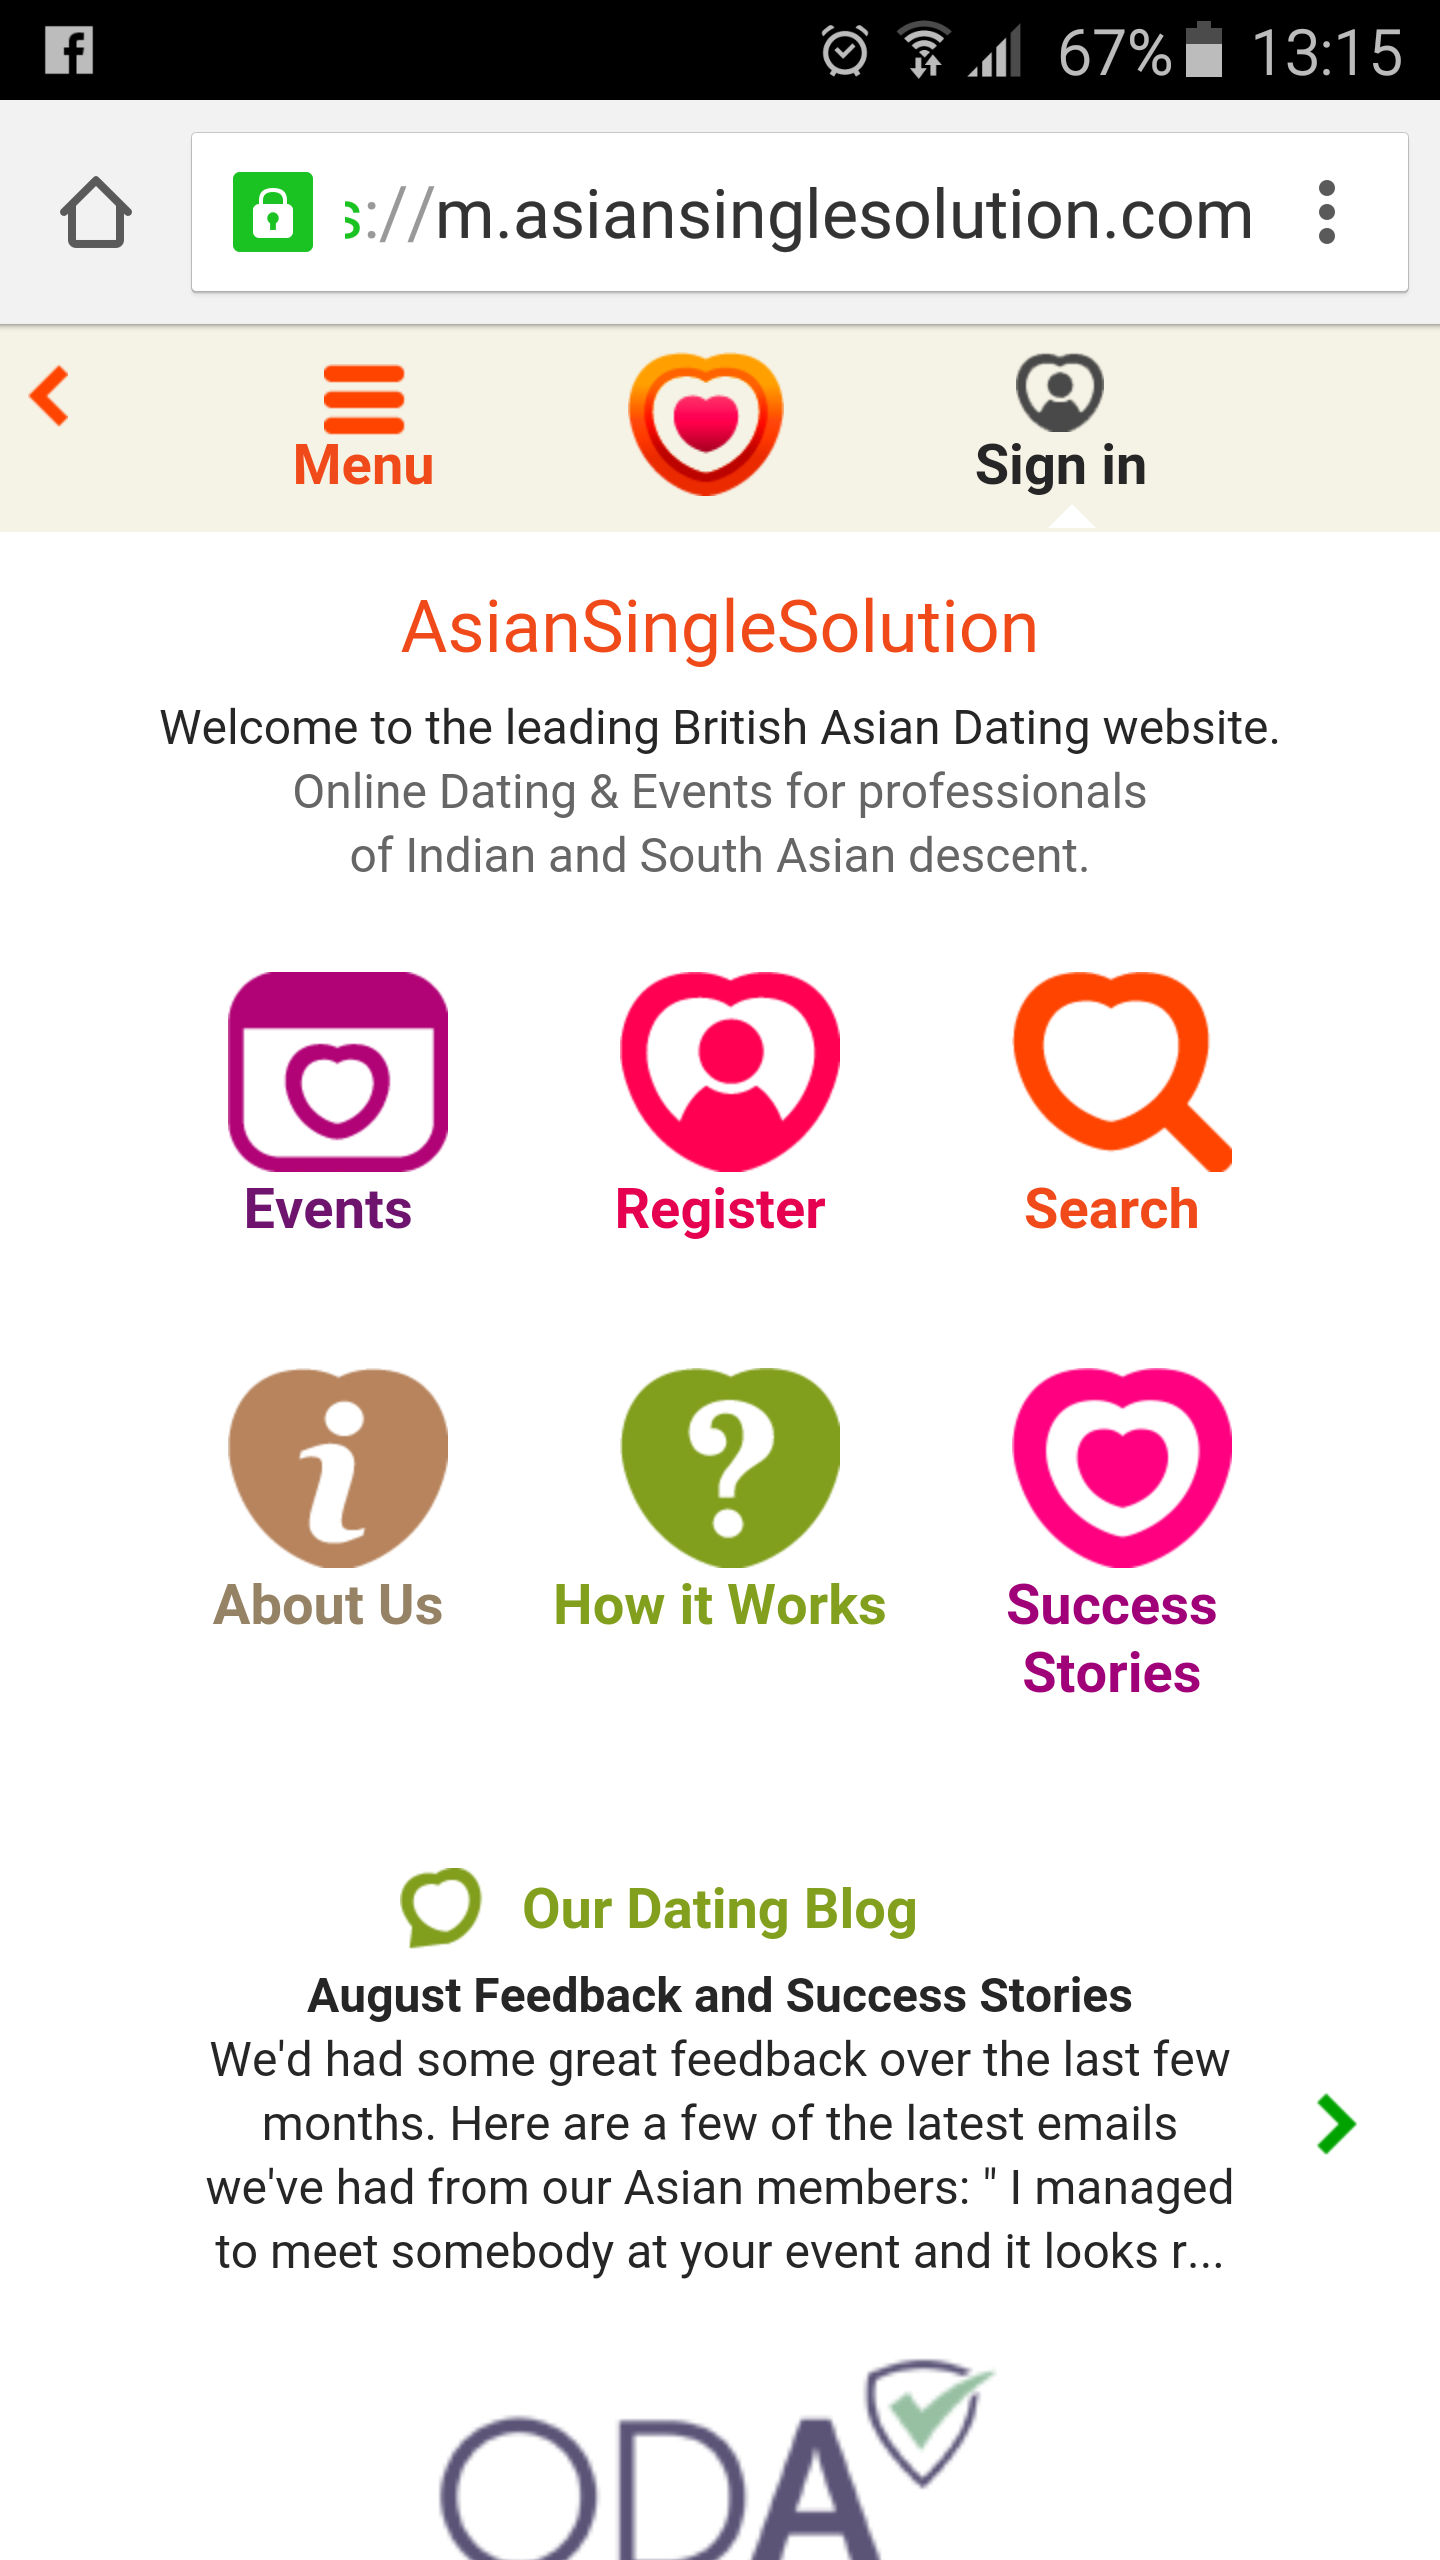 tallmansville asian dating website See experts' picks for the 10 best dating sites of 2018 compare online dating reviews, stats, free trials, and more (as seen on cnn and foxnews.